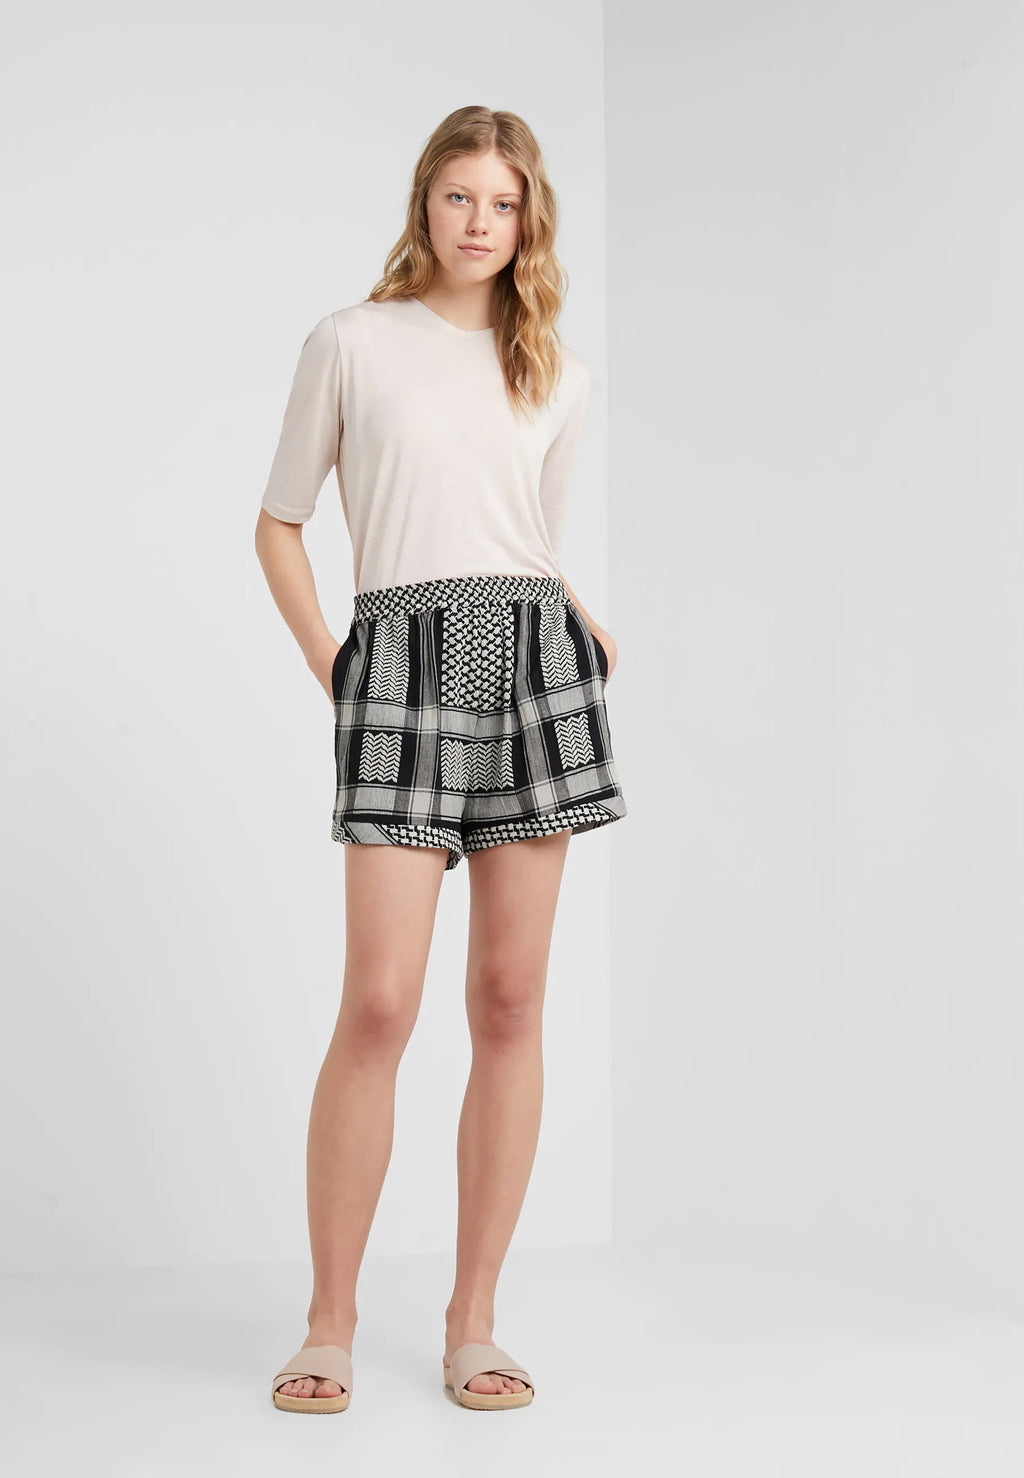 Buy Shorts from CECILIE COPENHAGEN at PAYA boutique